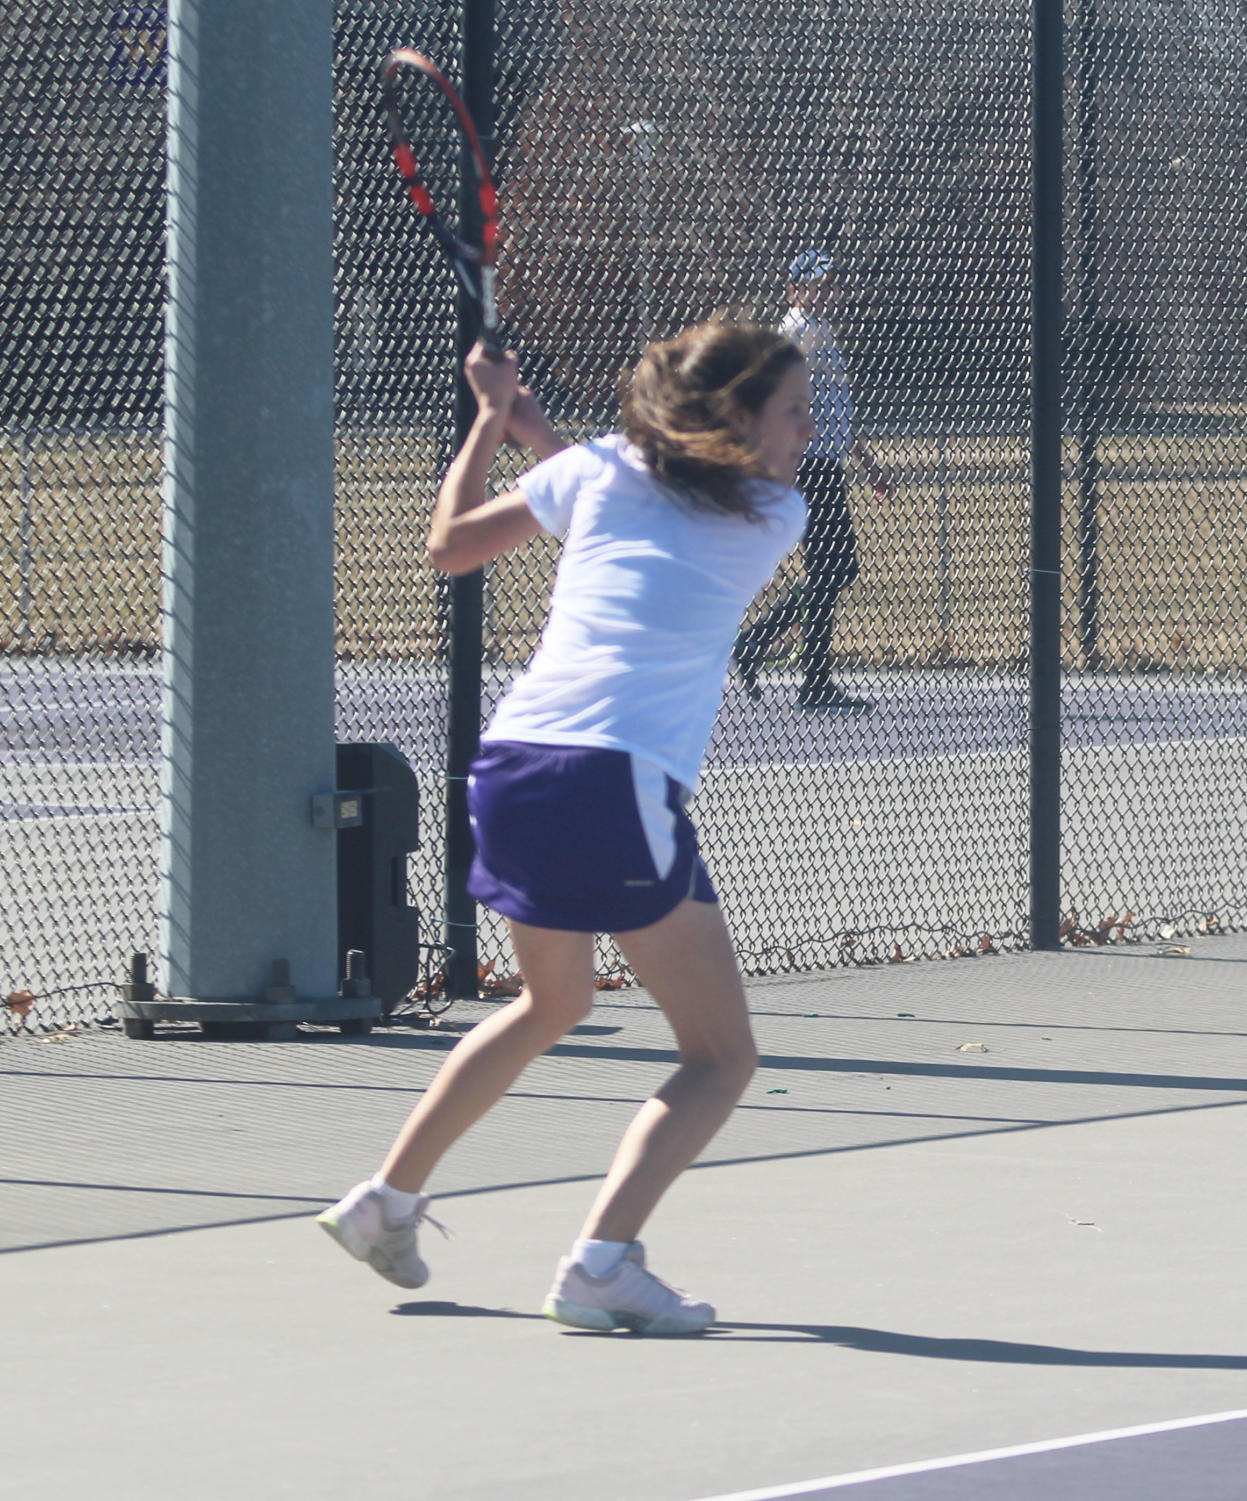 Mary Bjelica swings her racket in a singles match at home.